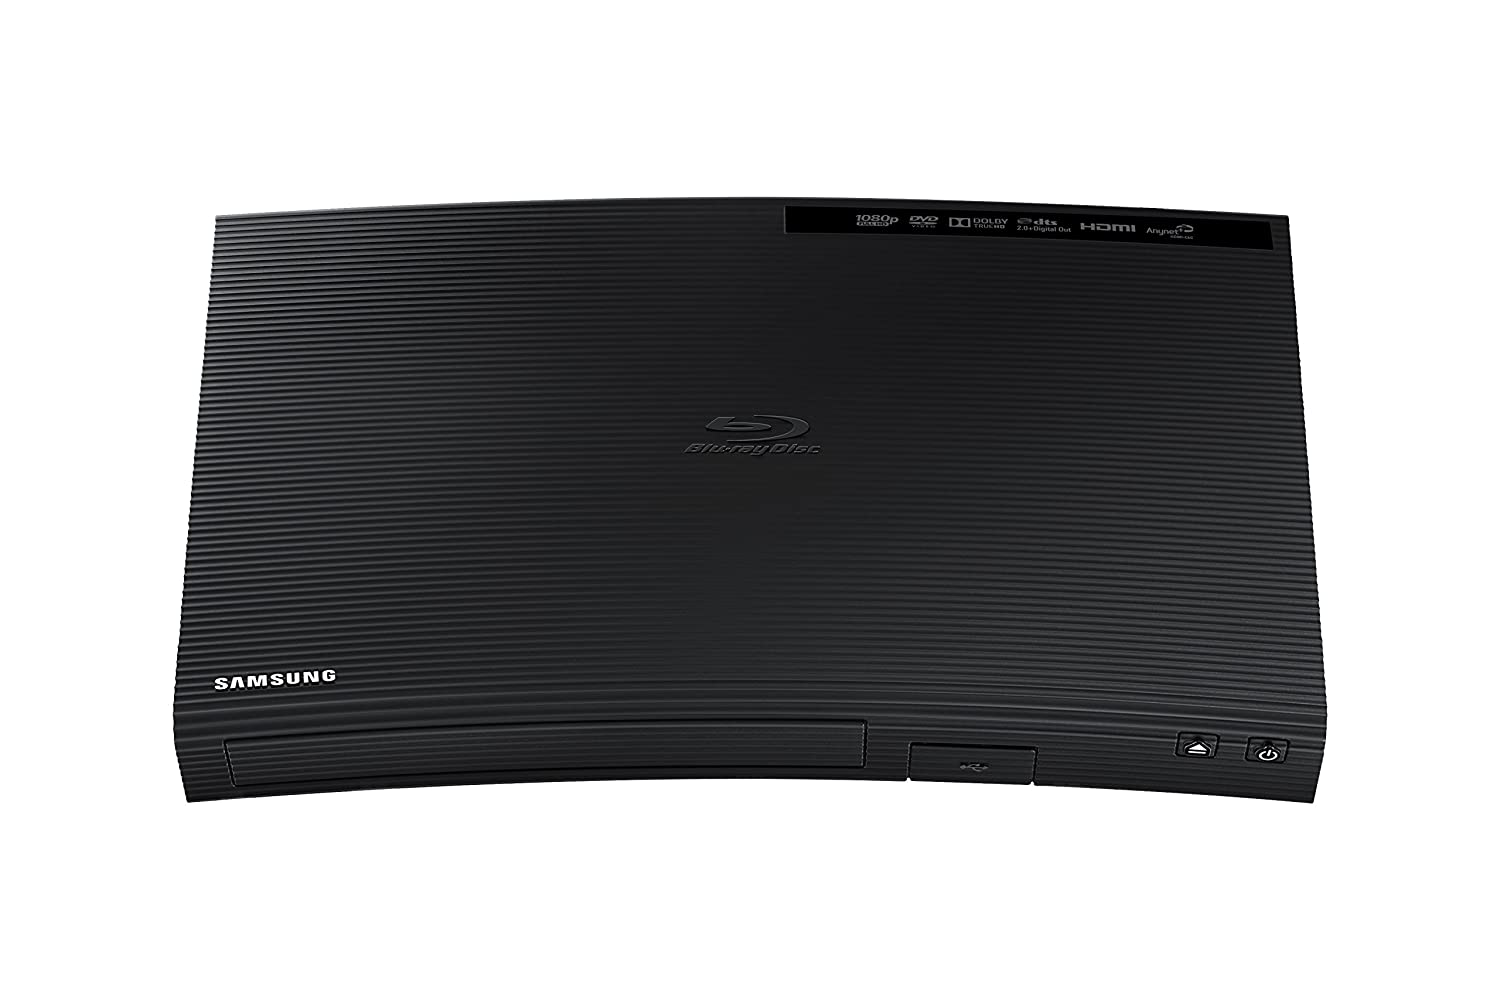 Samsung BD-J5100 Curved Blu-ray Player (2015 Model) BD-J5100/ZA